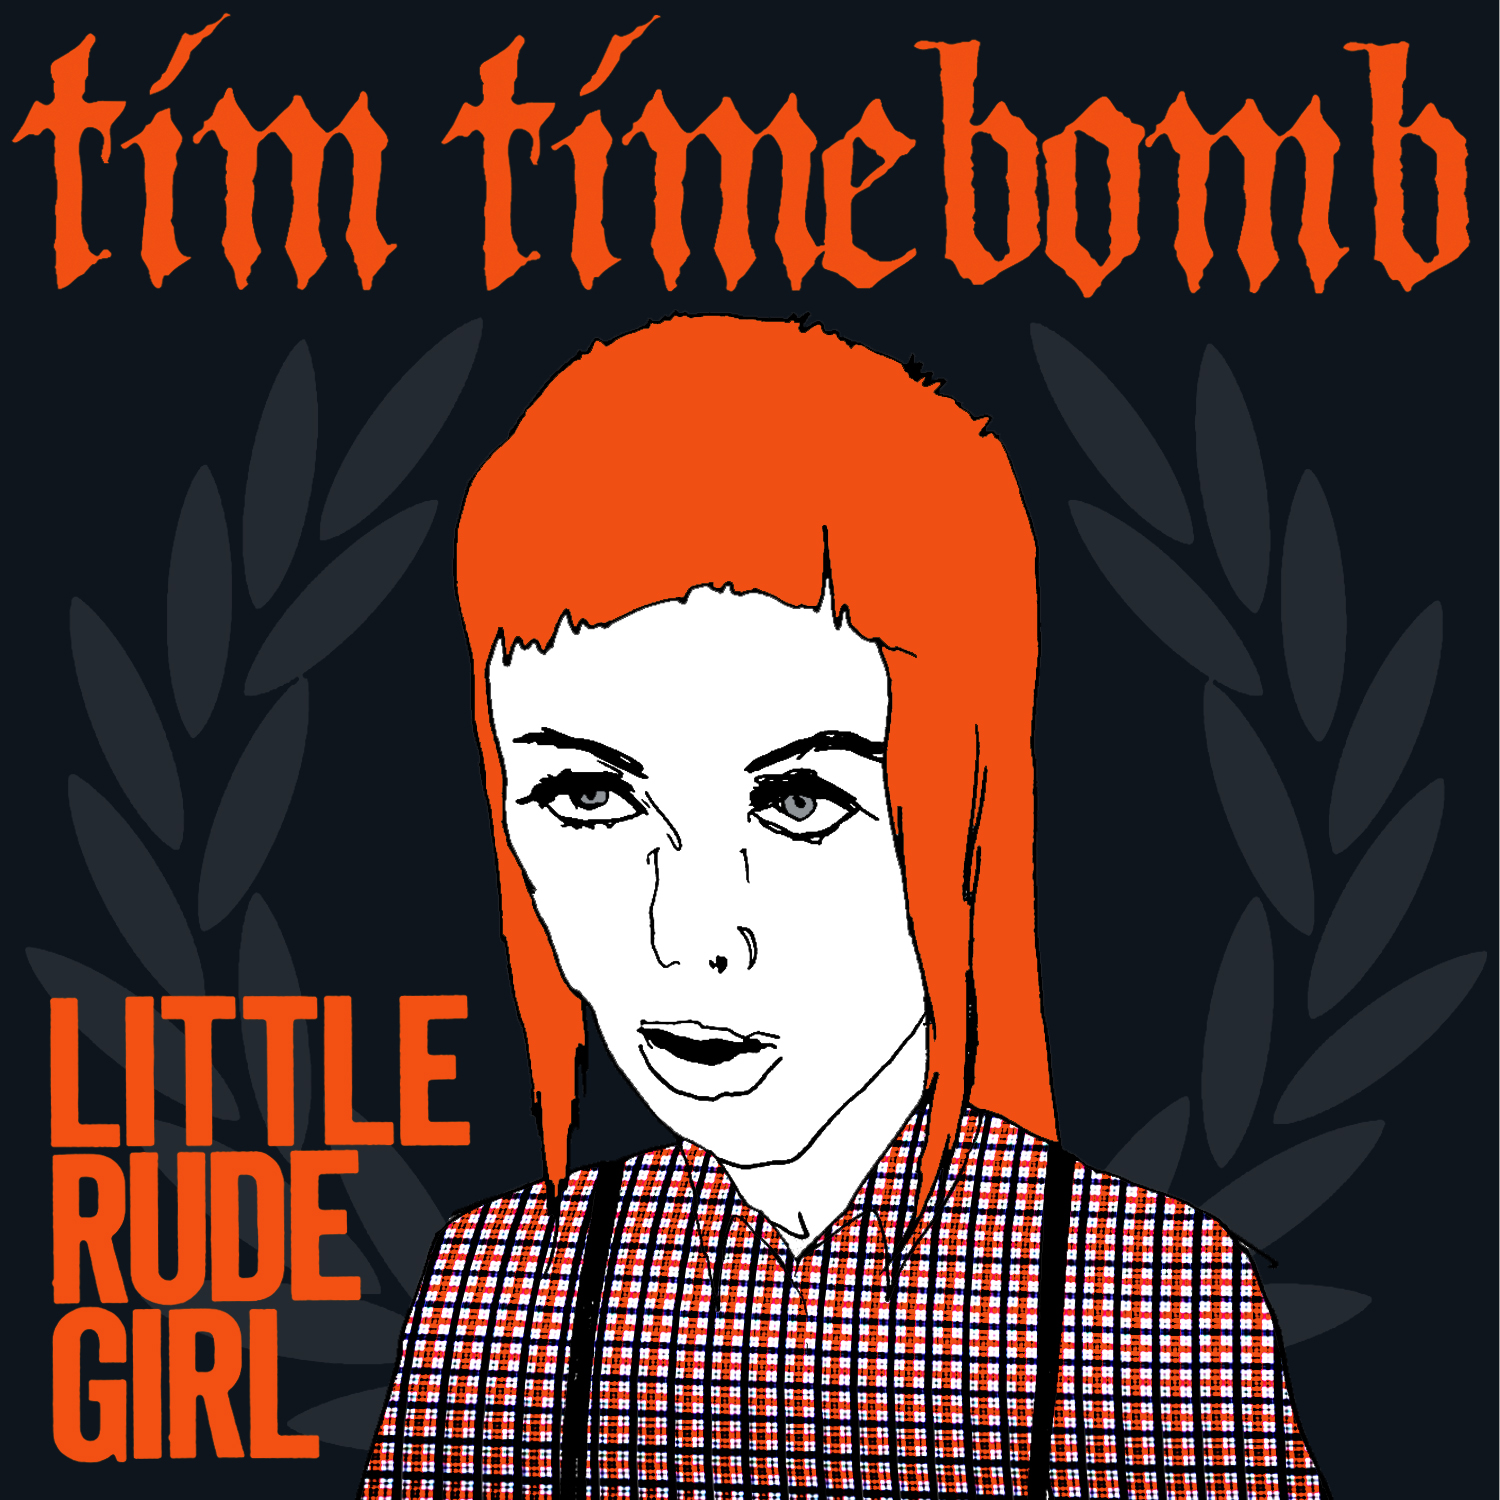 ___LITTLE RUDE GIRL